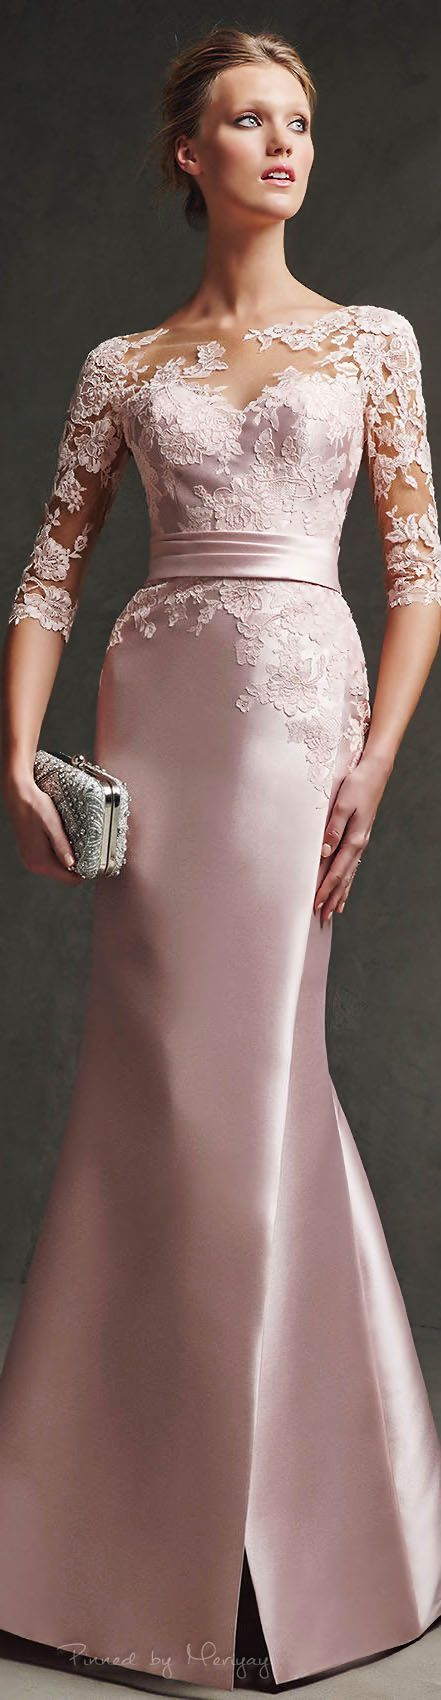 Rose colored dress with sheer lace sleeves